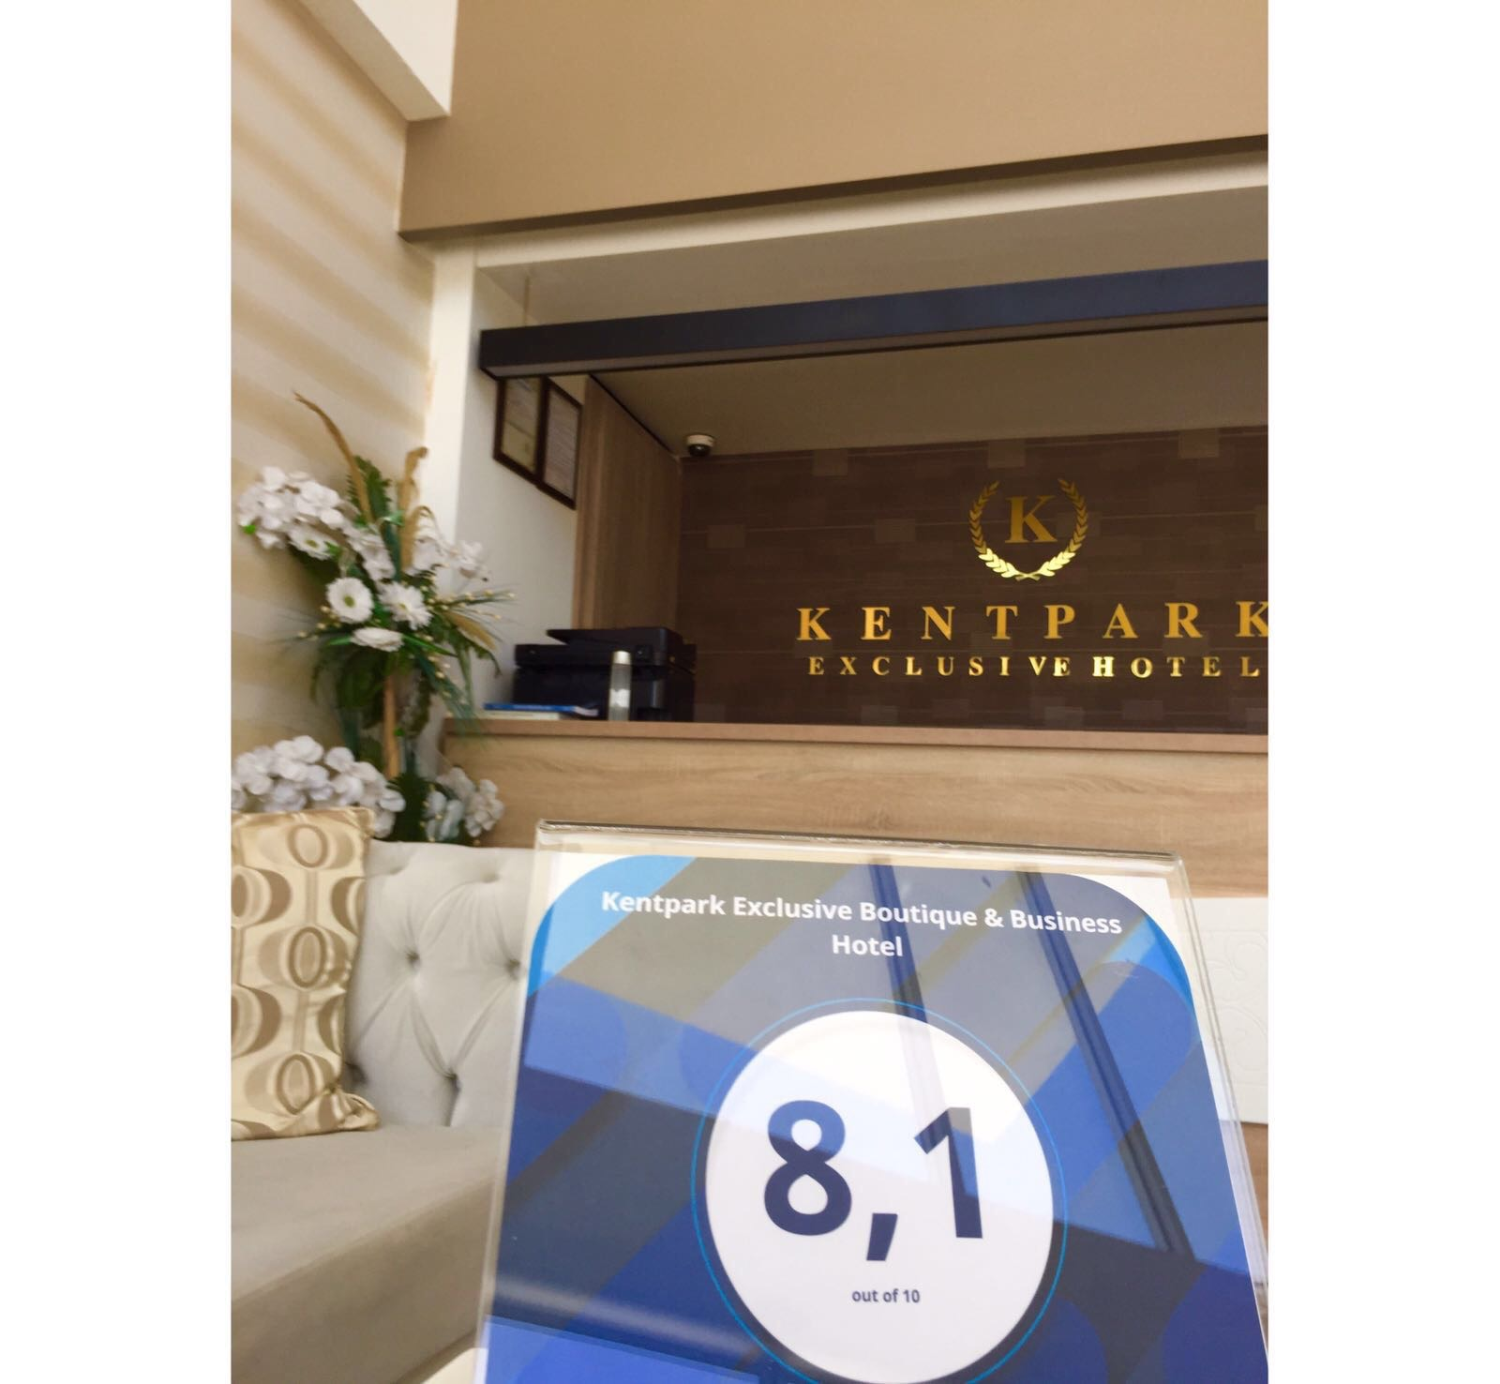 KENTPARK EXCLUSİVE HOTEL